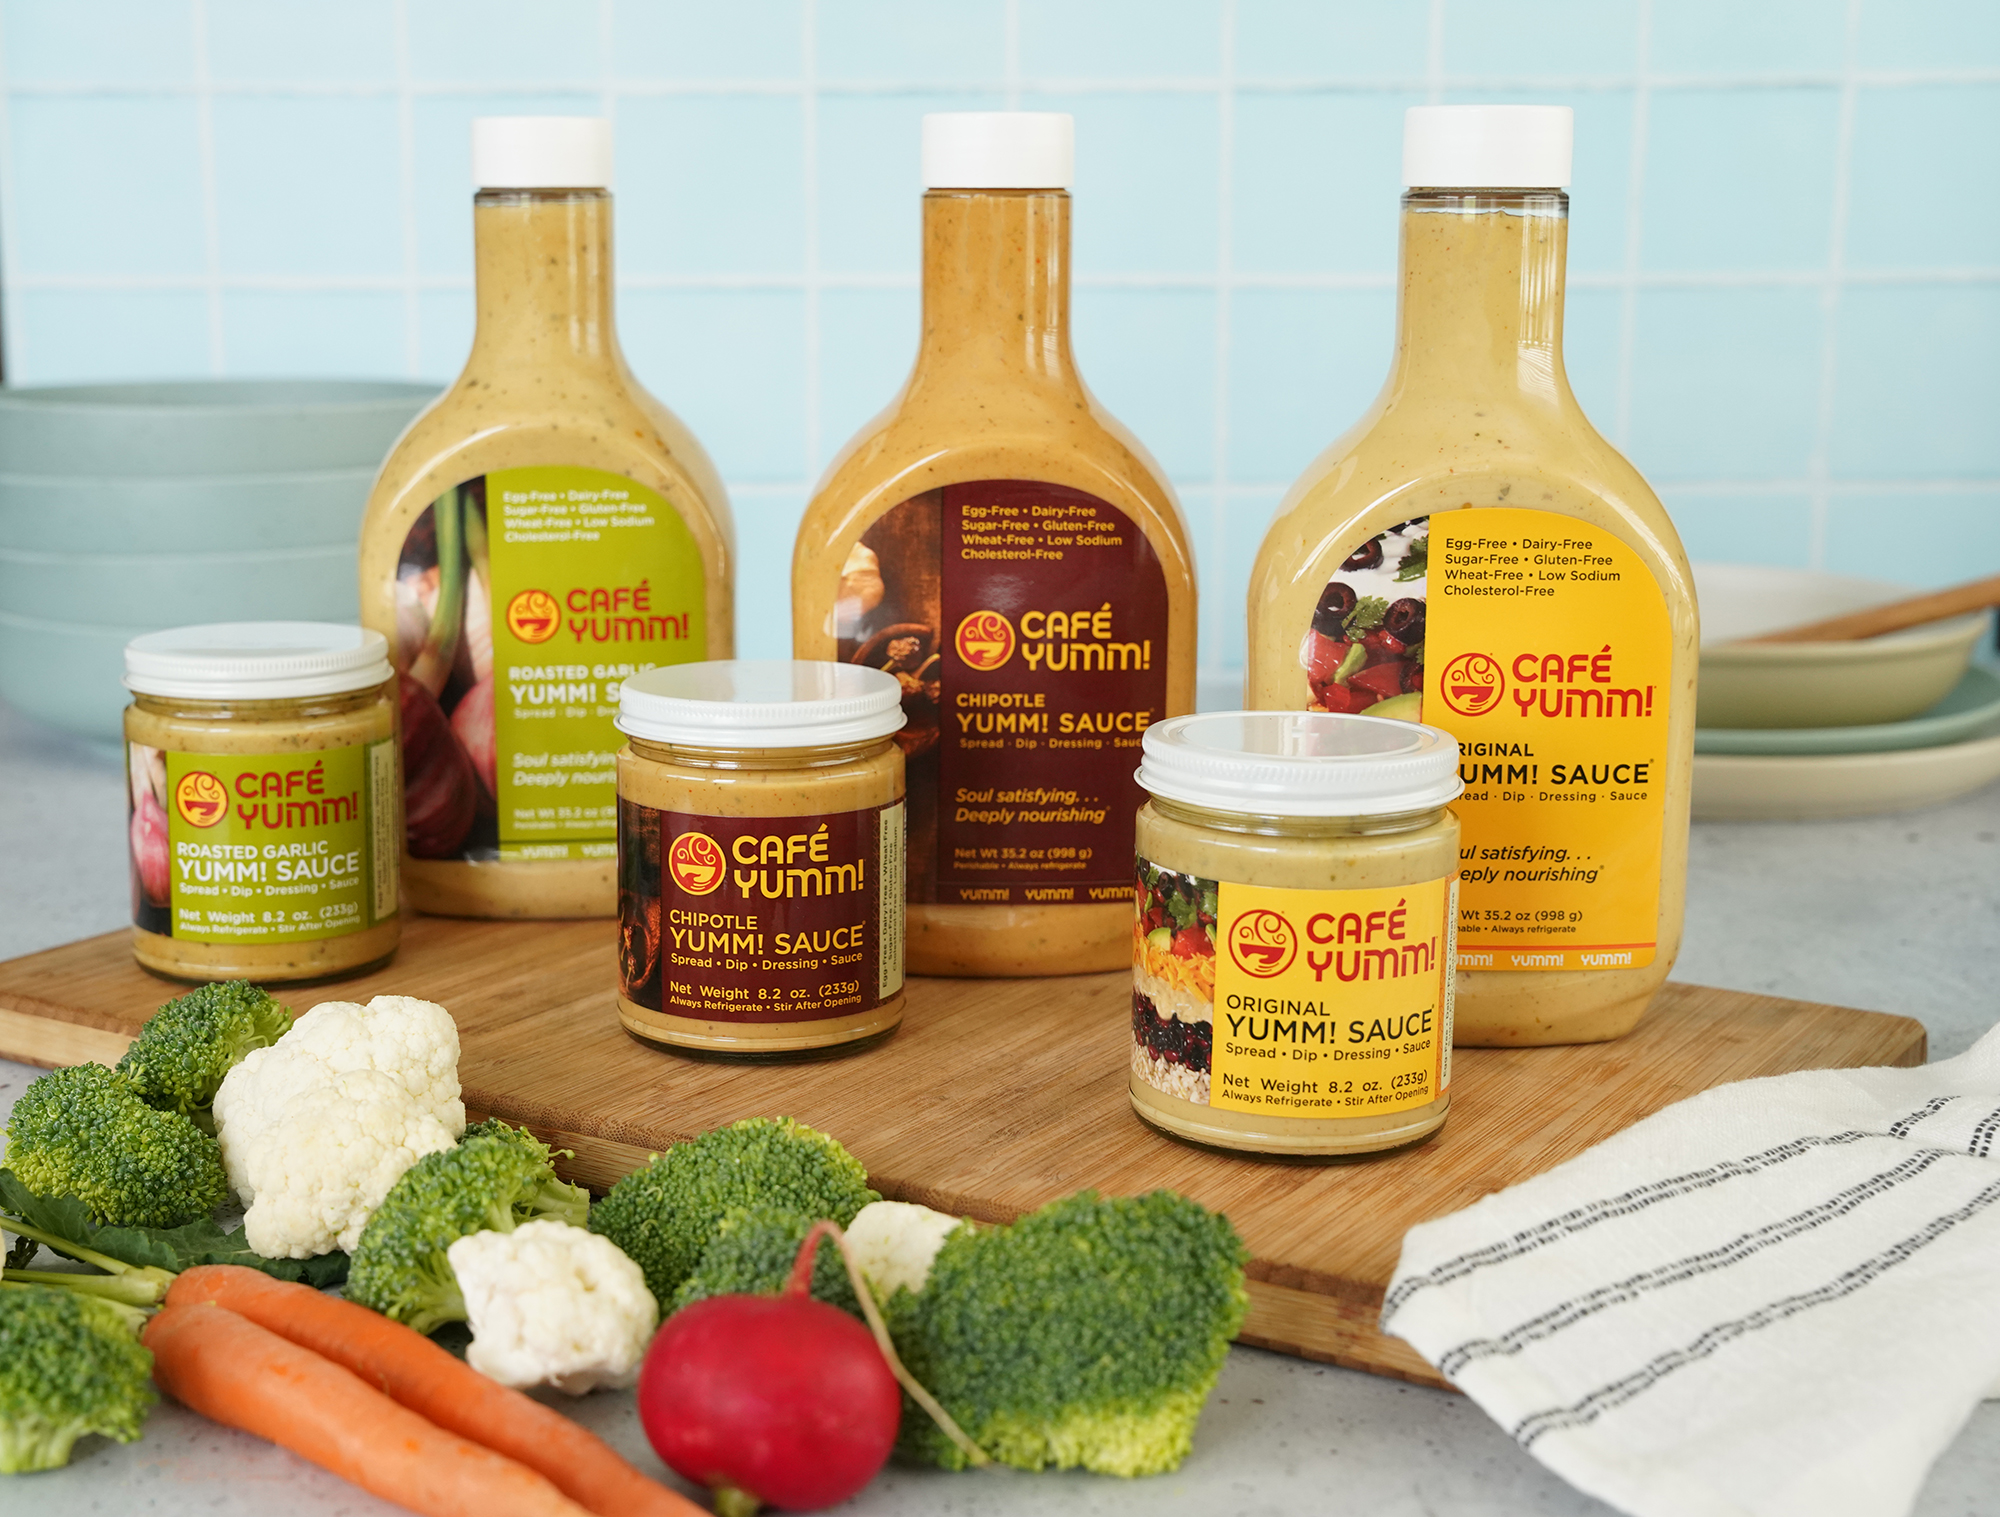 Yumm! Sauce in three flavors with fresh dipping vegetables.